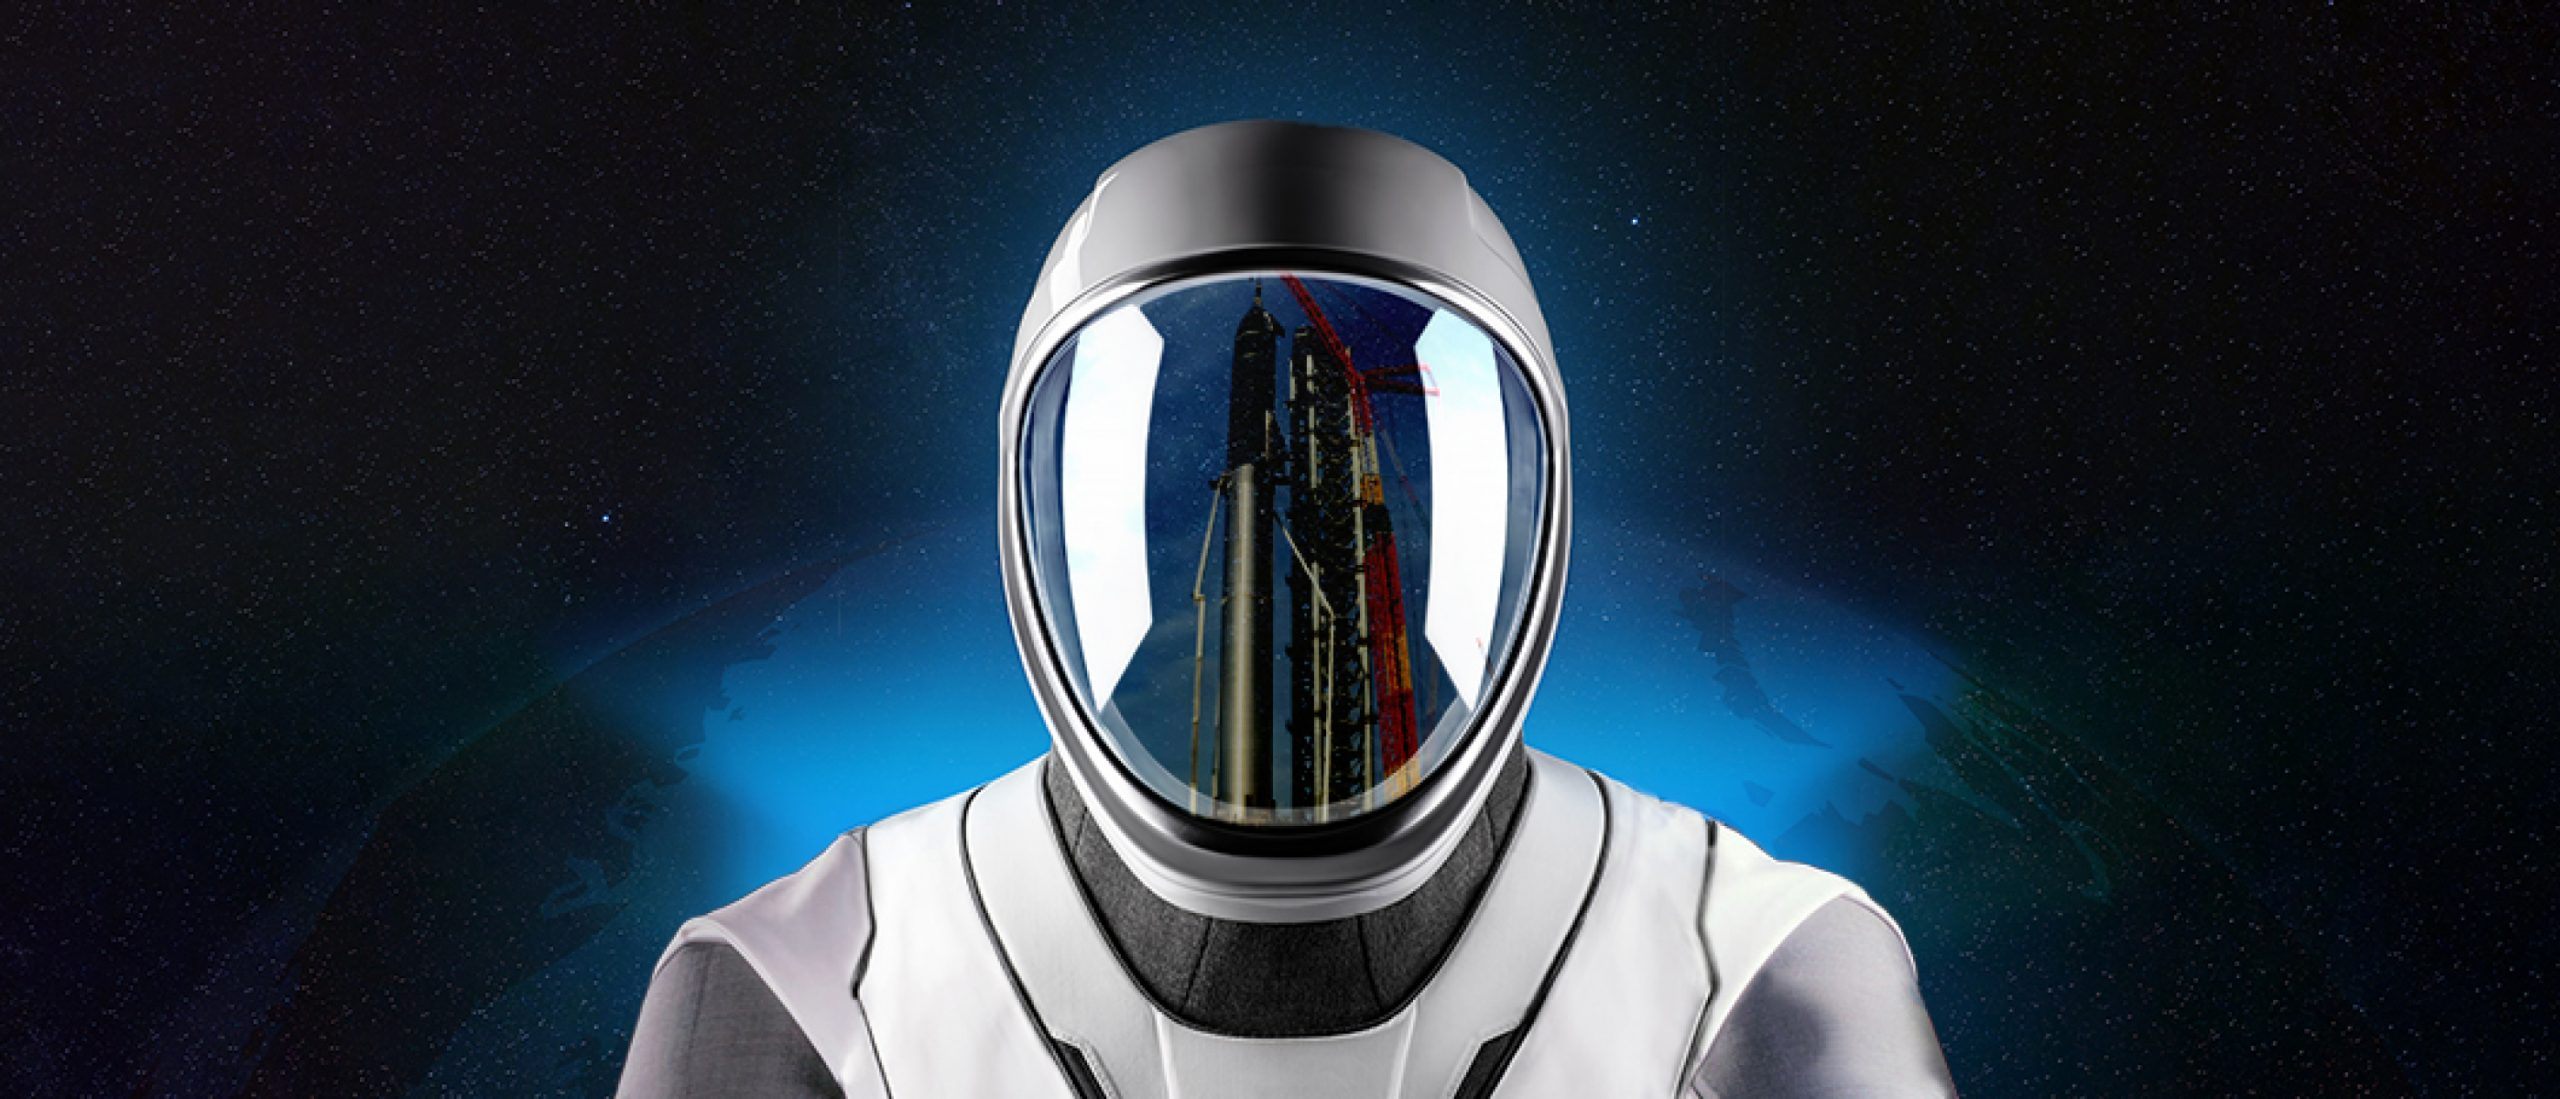 Starship and crane reflection in the SpaceX helmet visor